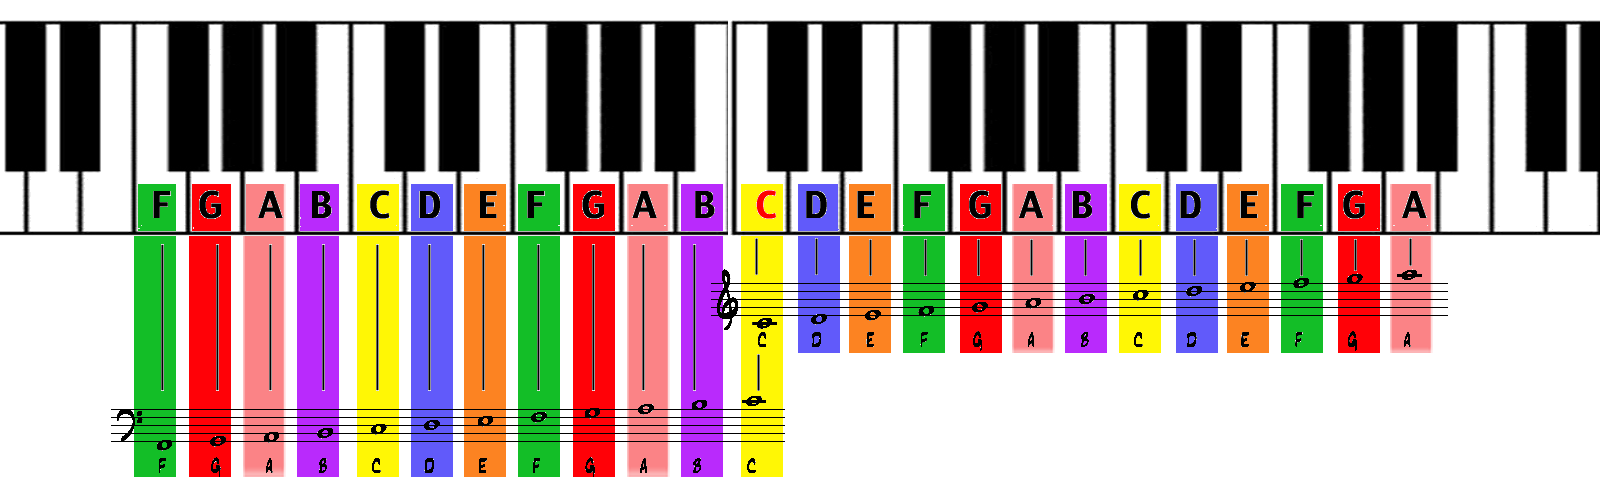 Piano Keyboard Chart  Google Search  Piano